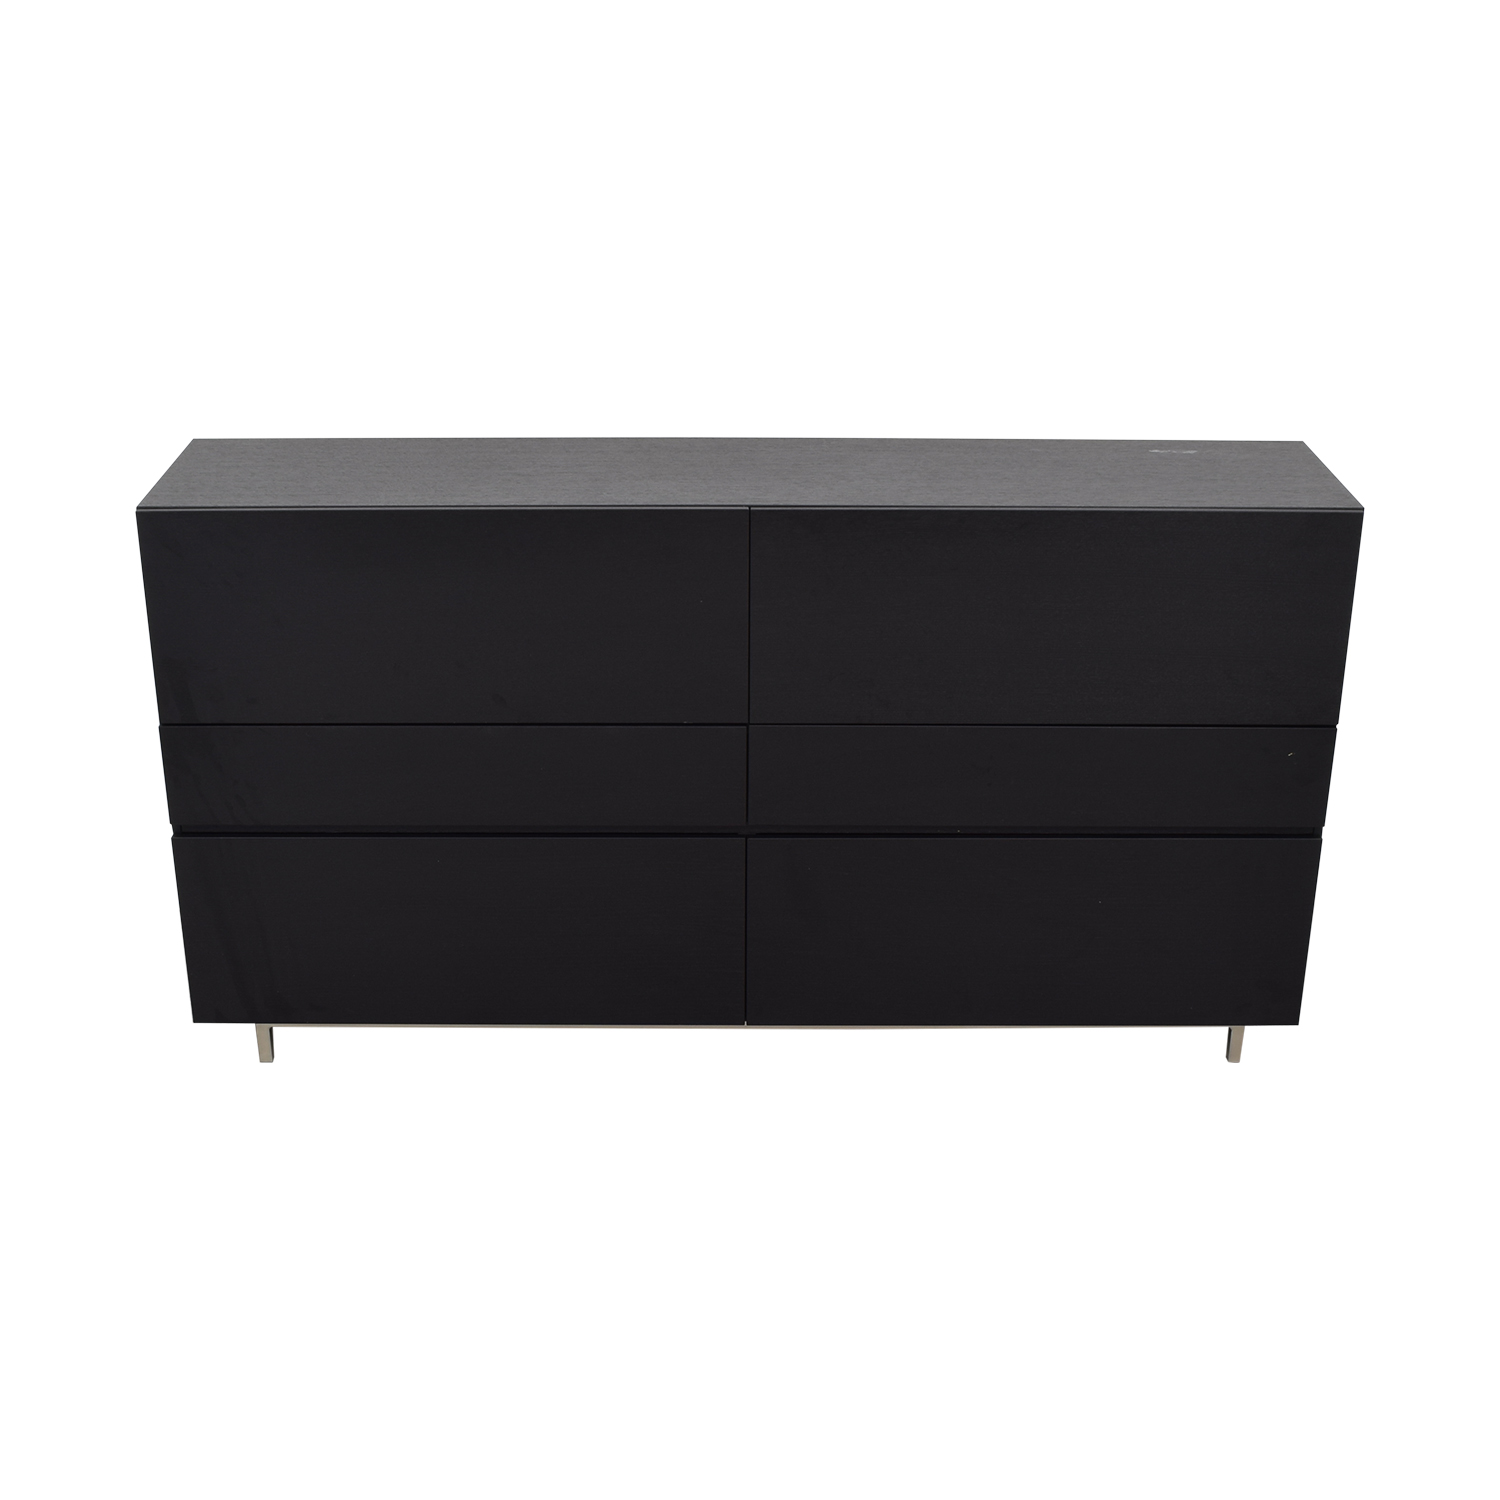 West Elm West Elm Six Drawer Dresser on sale